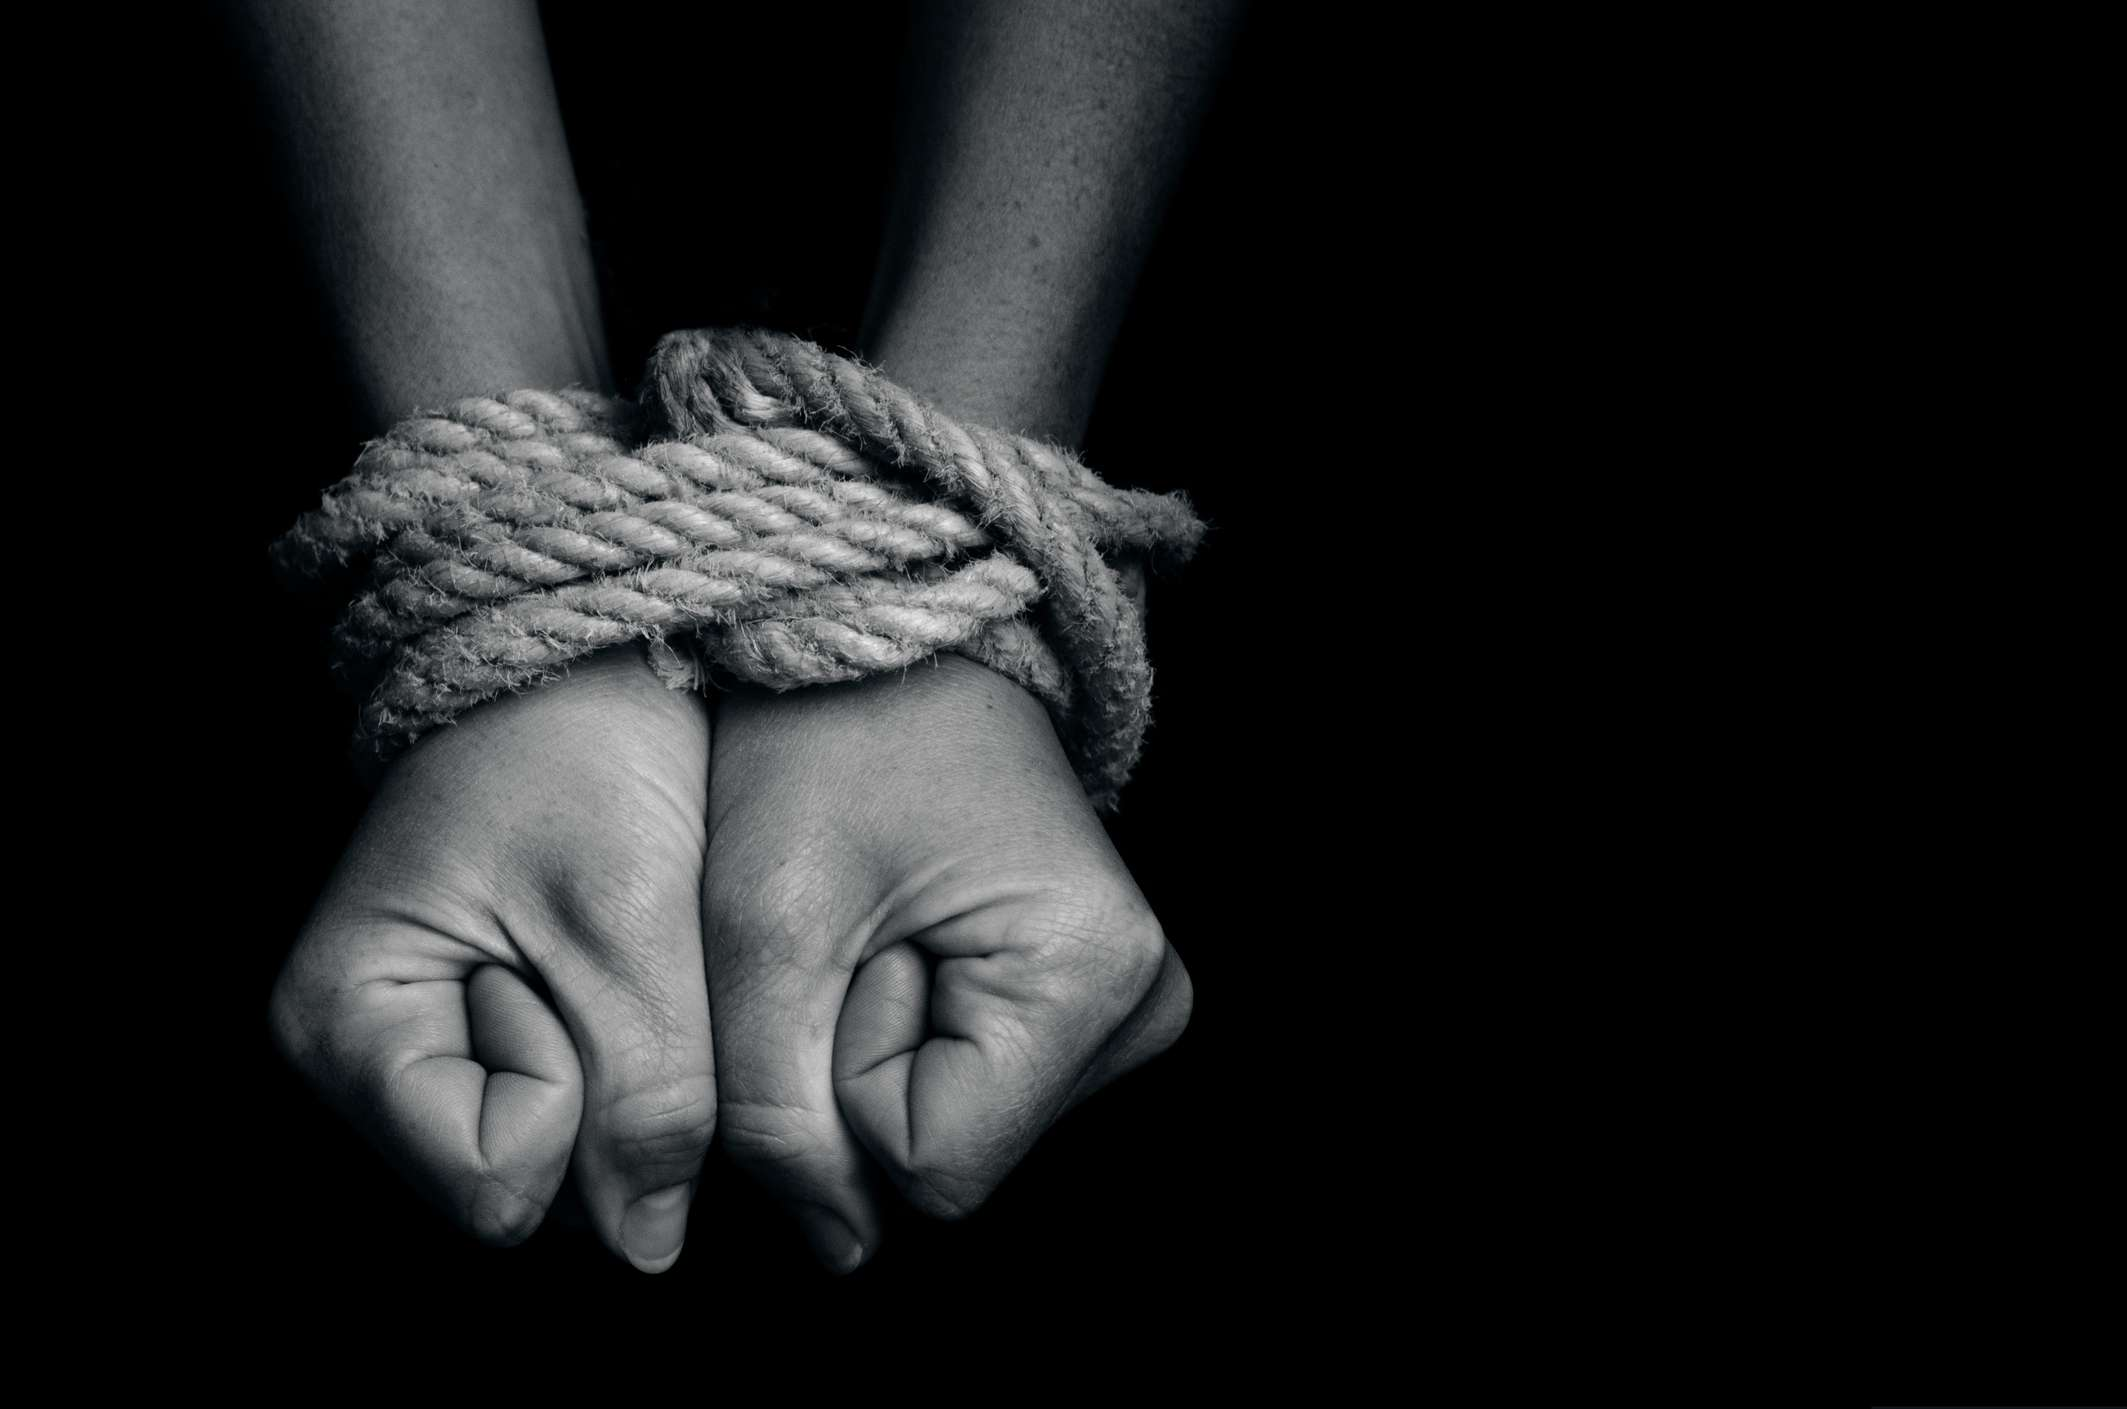 Ja Secures 1st Human Trafficking Conviction